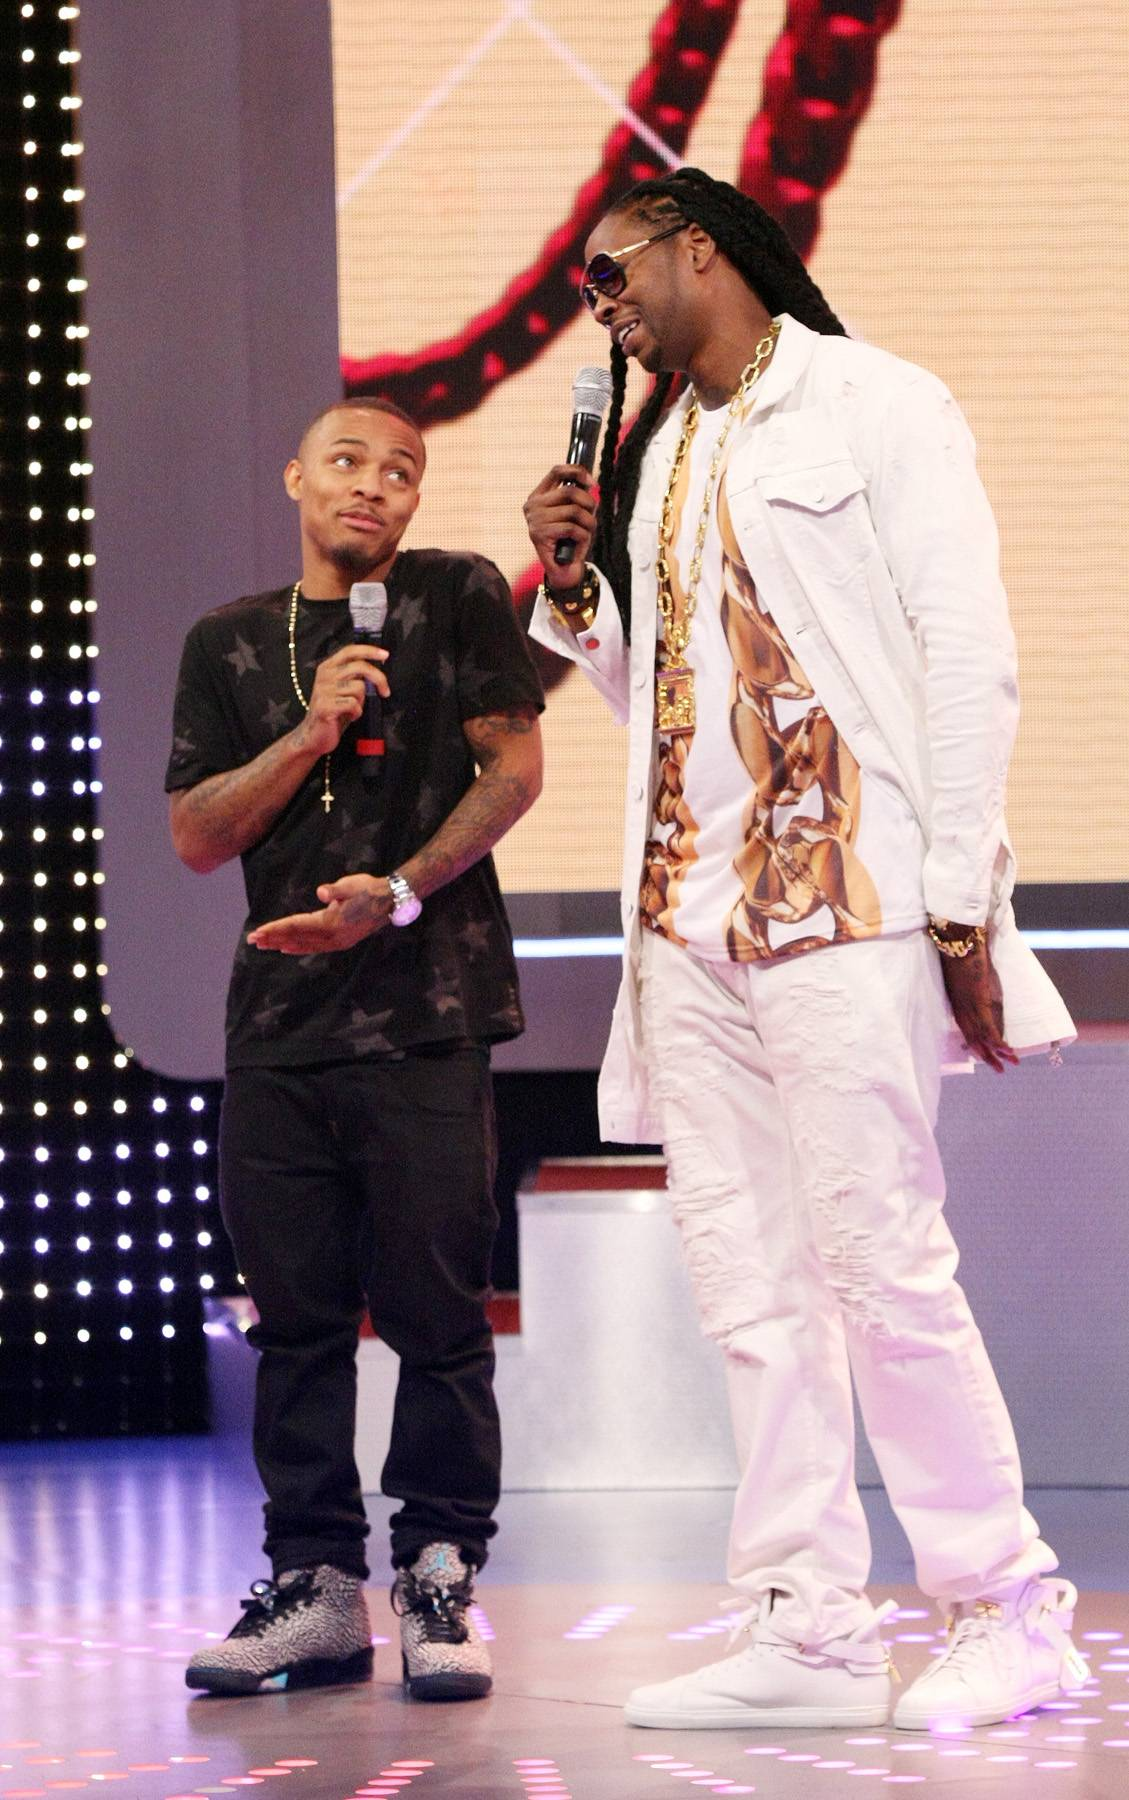 Hanh! - Bow Wow and recording artist 2 Chainz on 106. (Photo: Bennett Raglin/BET/Getty Images for BET)